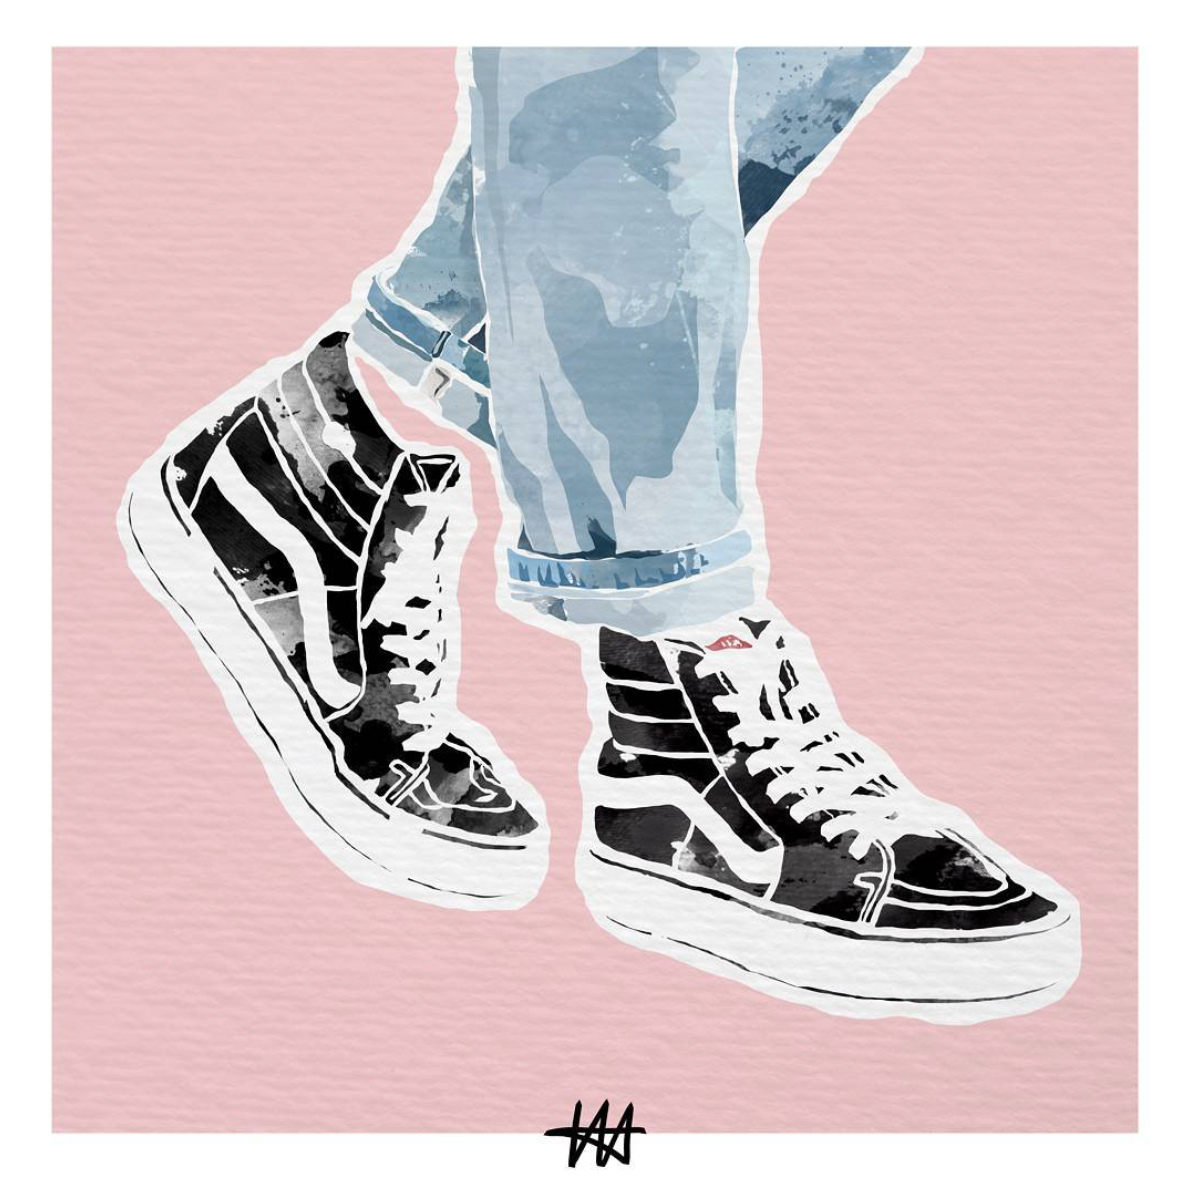 Your weekly art fix by Lena Hrnt. | Shoe art